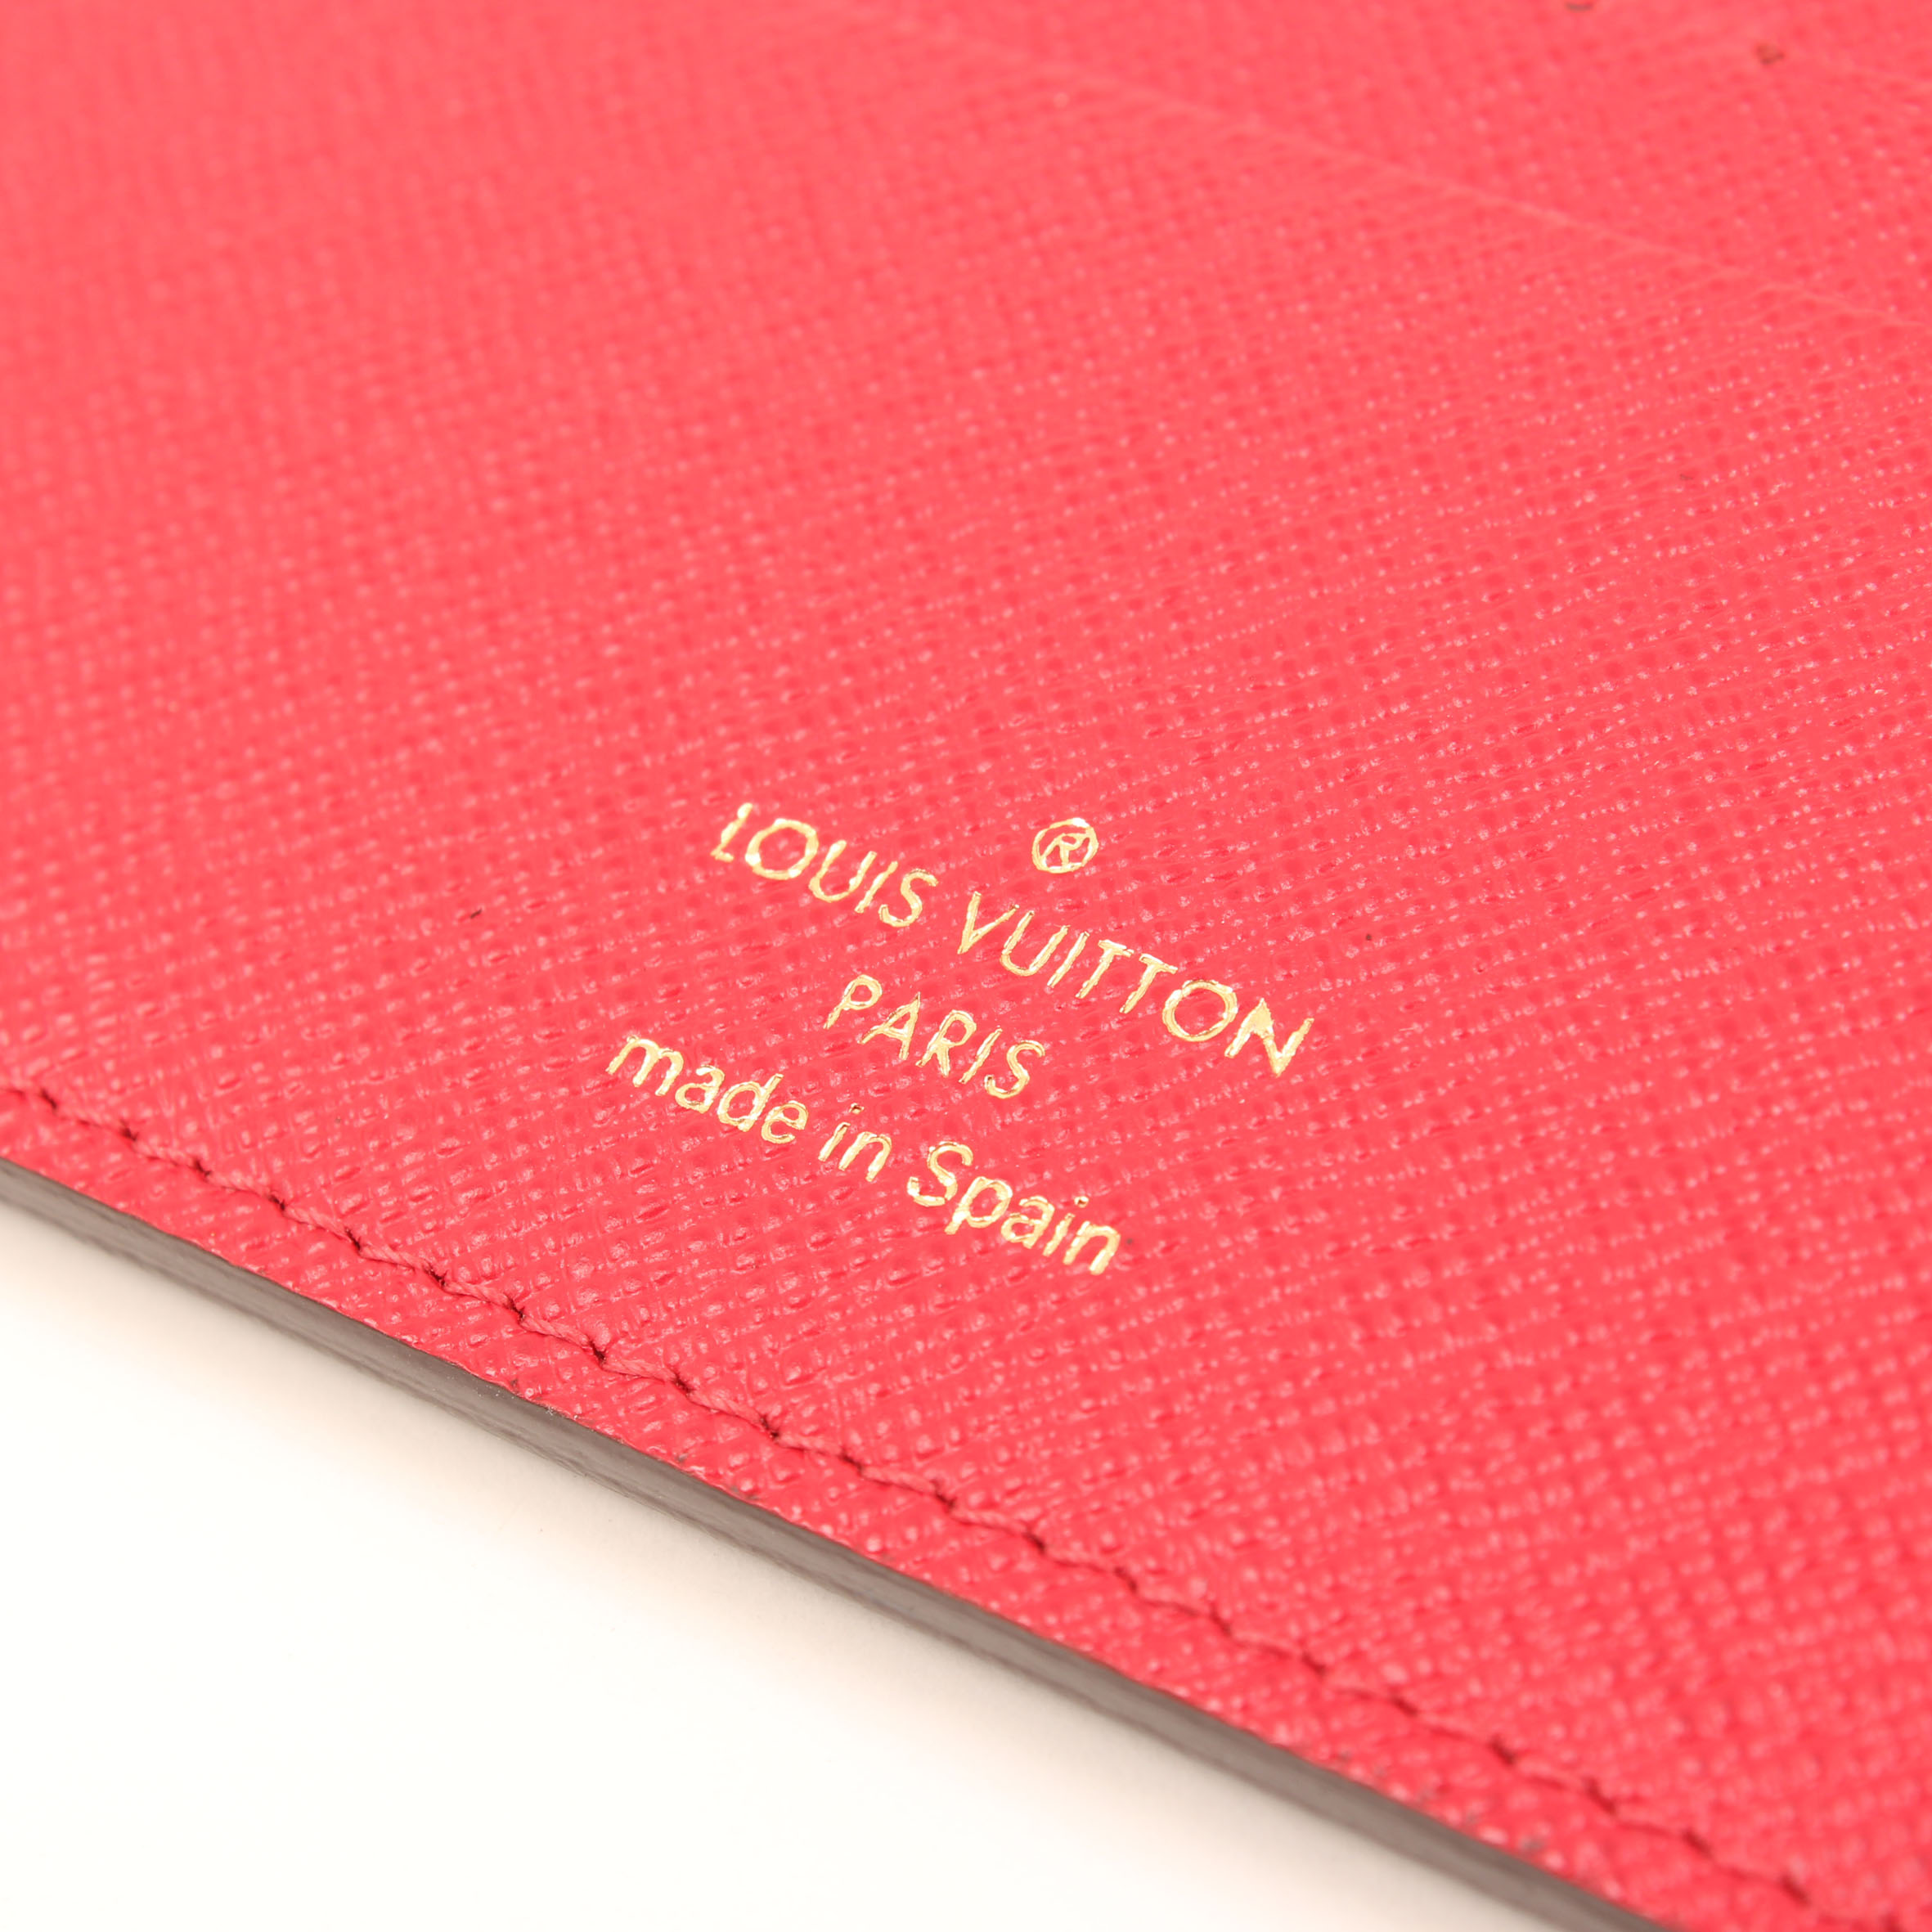 Brand image of louis vuitton insolite monogram red wallet